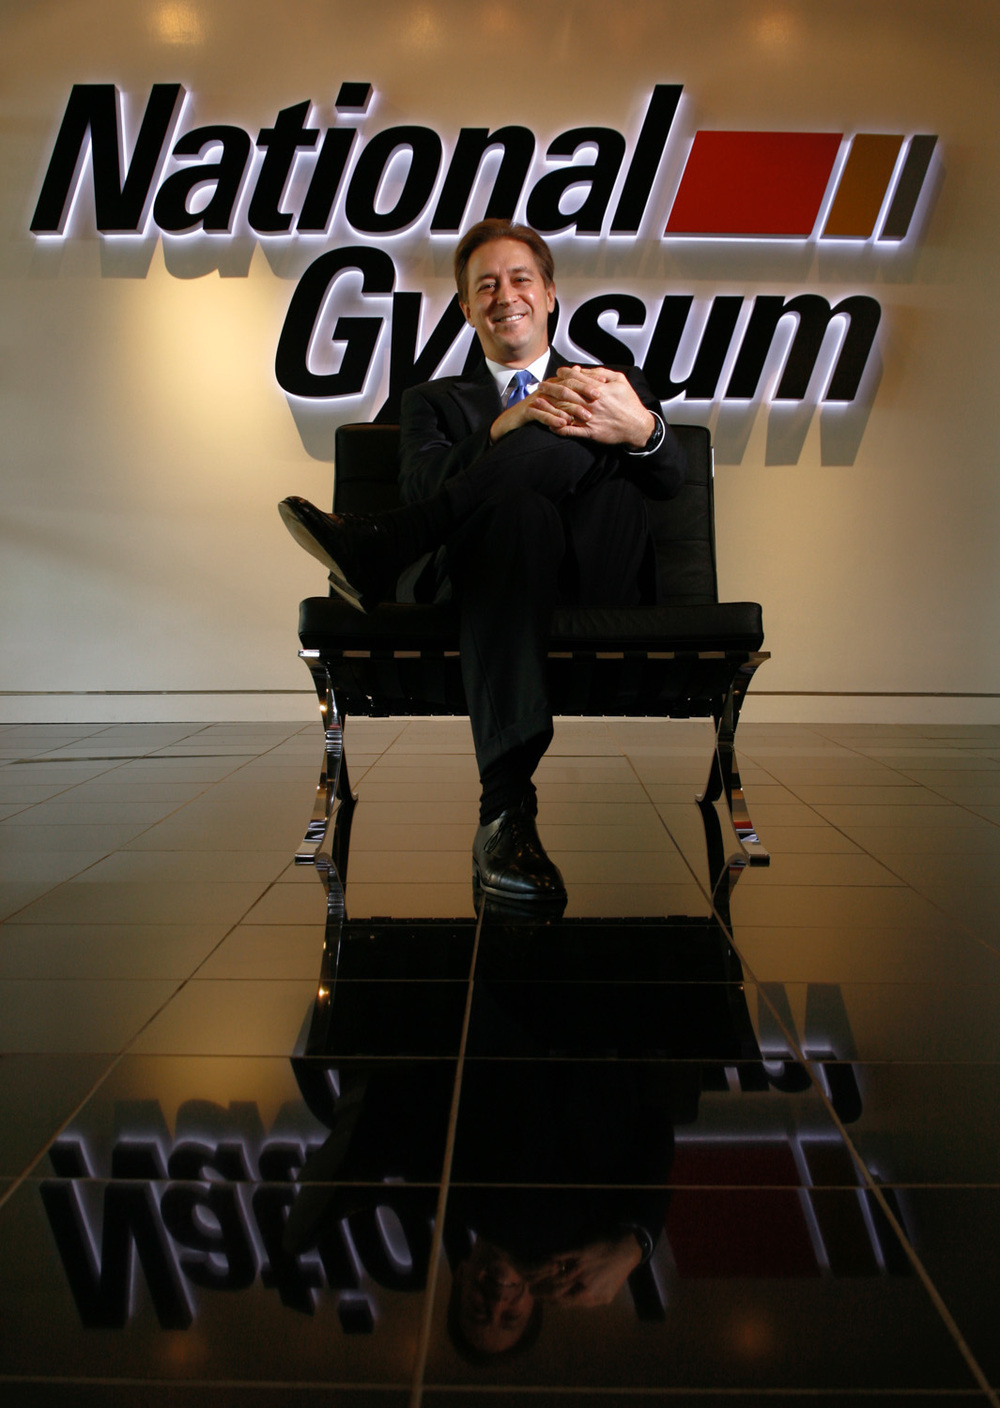 Thomas Nelson (2006), Chairman, President & CEO of National Gypsum